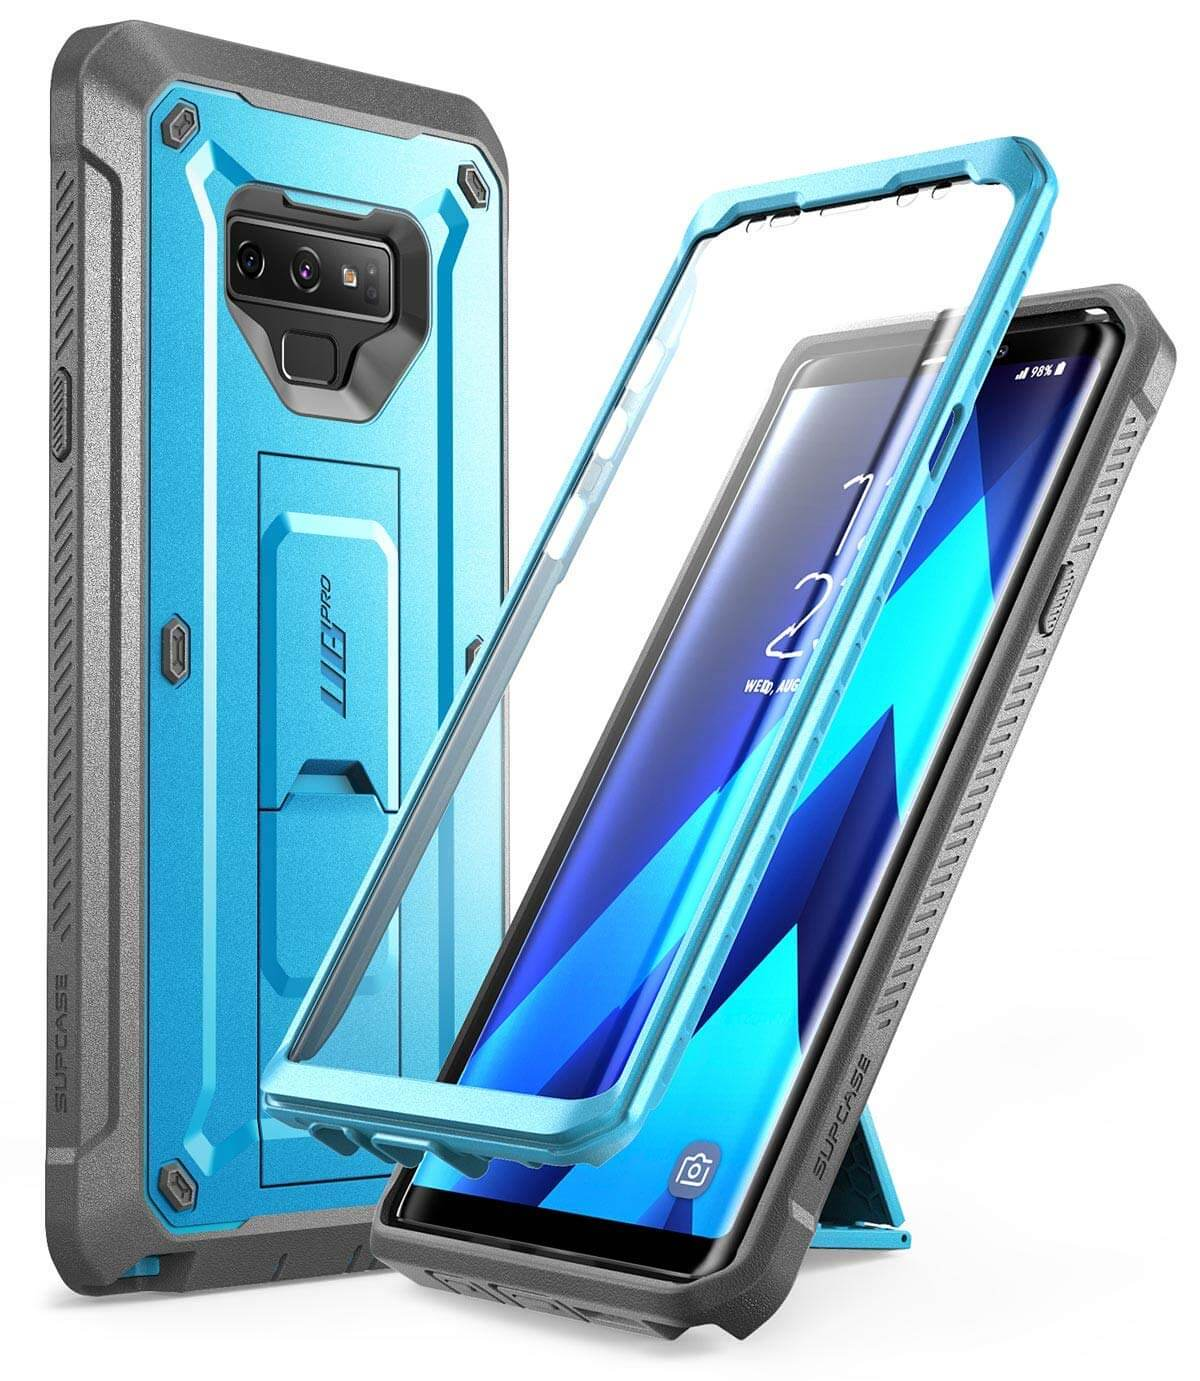 Protective Samsung Galaxy Note 9 Kickstand Cases